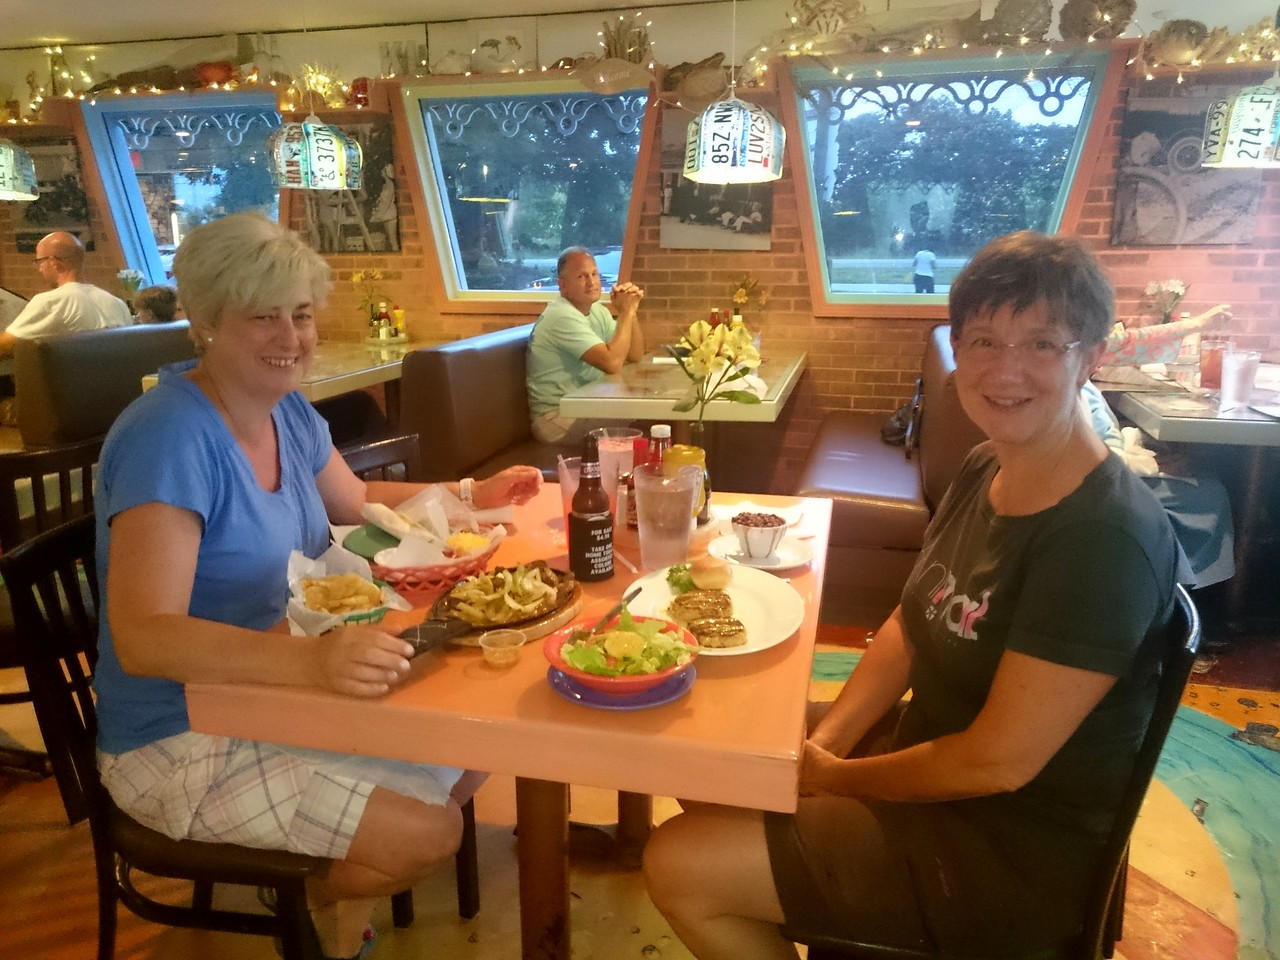 Foodies on tour: Crab fritters and home made nachos